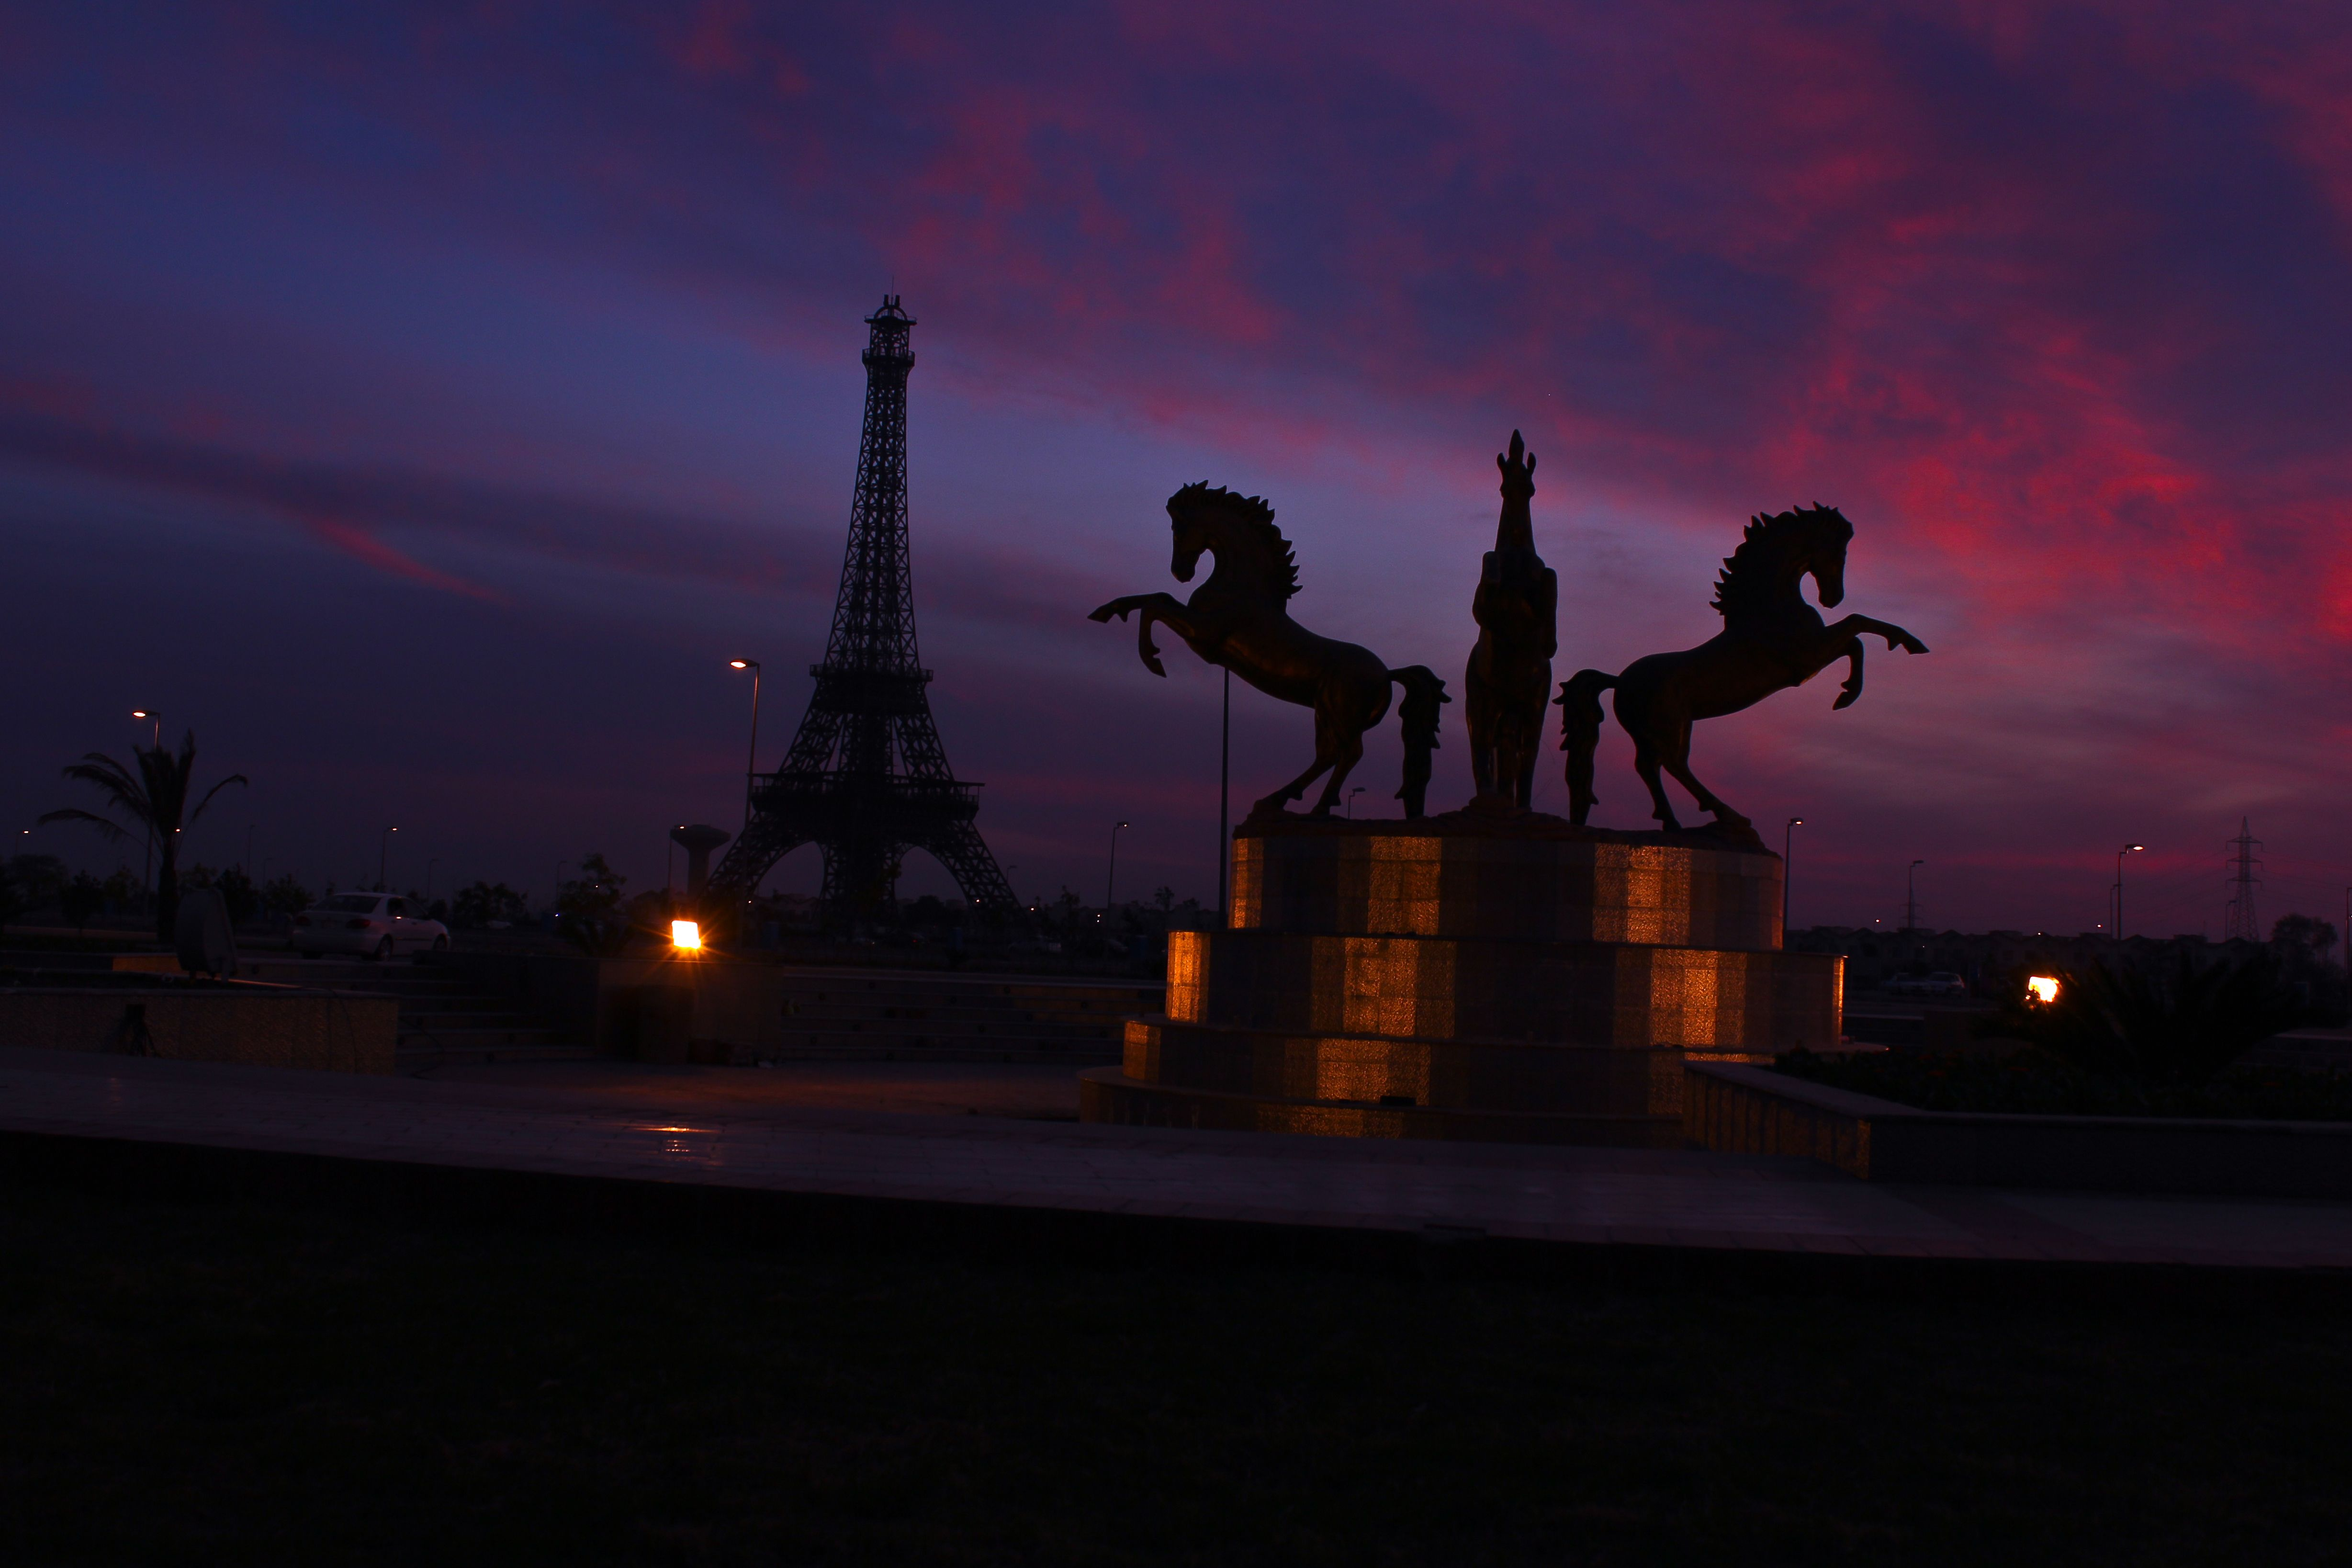 Lahore Eiffel Tower Was Constructed In 2014 In Bahria Town Lahore Punjab Pakistan 파키스탄